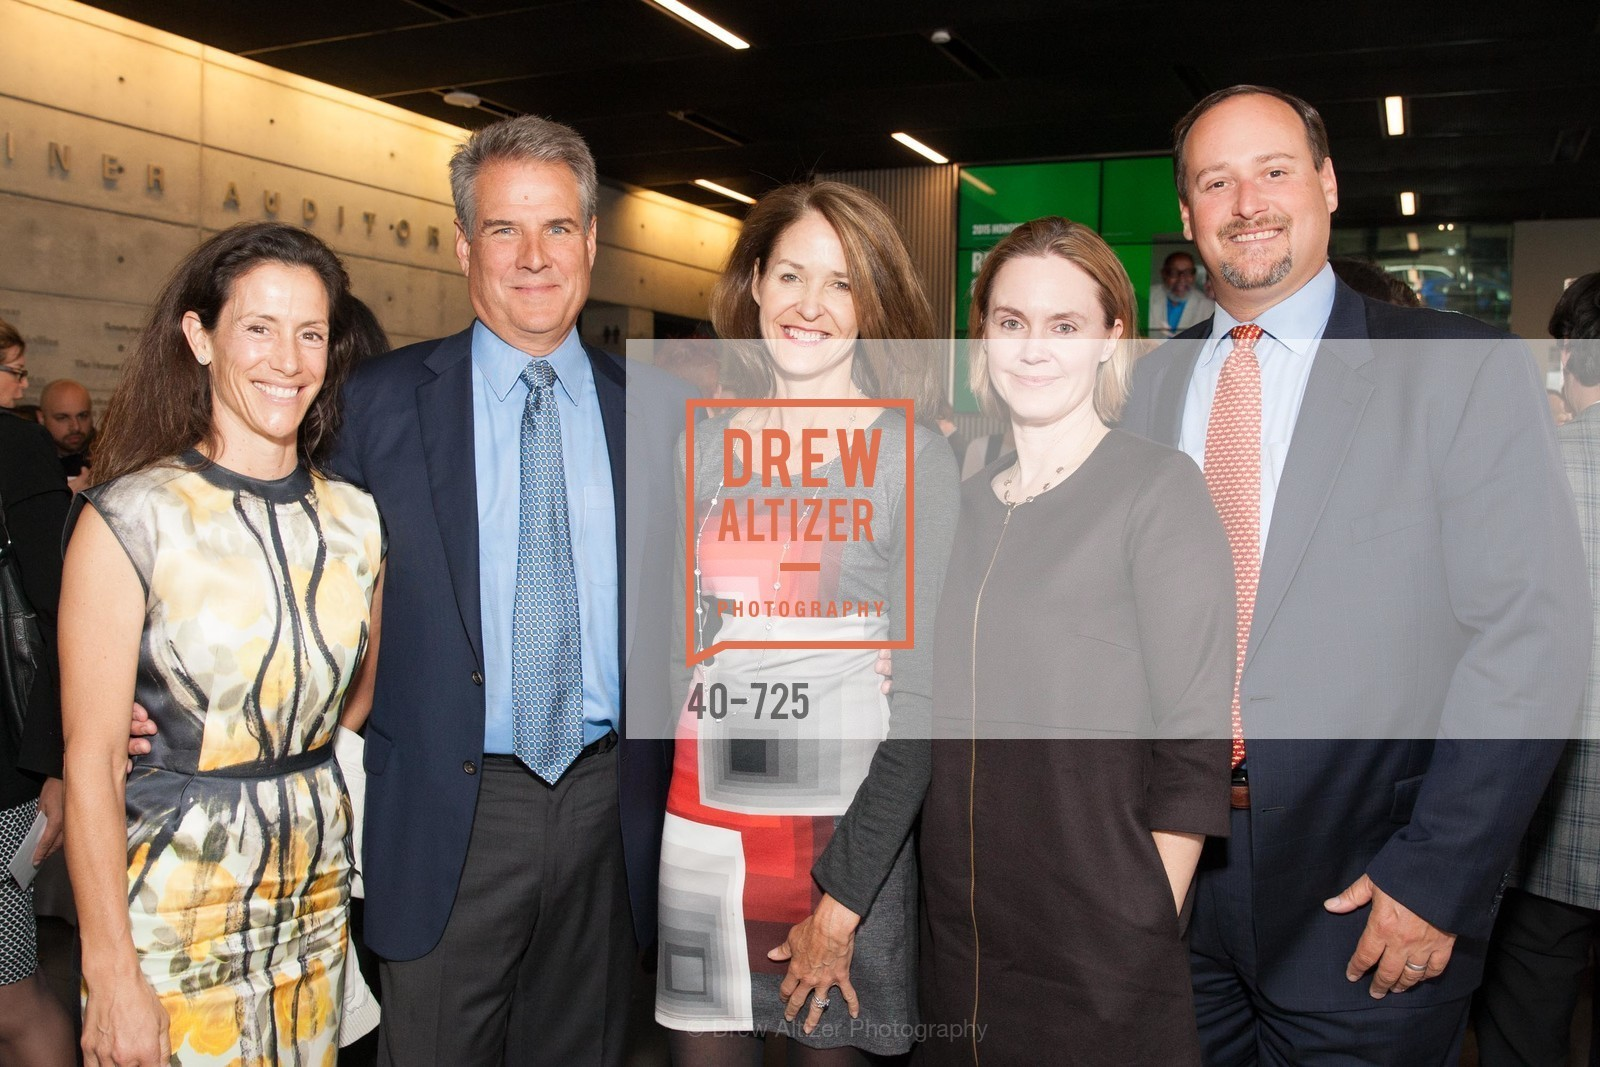 Eva Price, Bill Price, Robin Donoghue, Jennifer Bank, Brian Bank, COMMON SENSE Media Awards 2015, US, May 14th, 2015,Drew Altizer, Drew Altizer Photography, full-service event agency, private events, San Francisco photographer, photographer California